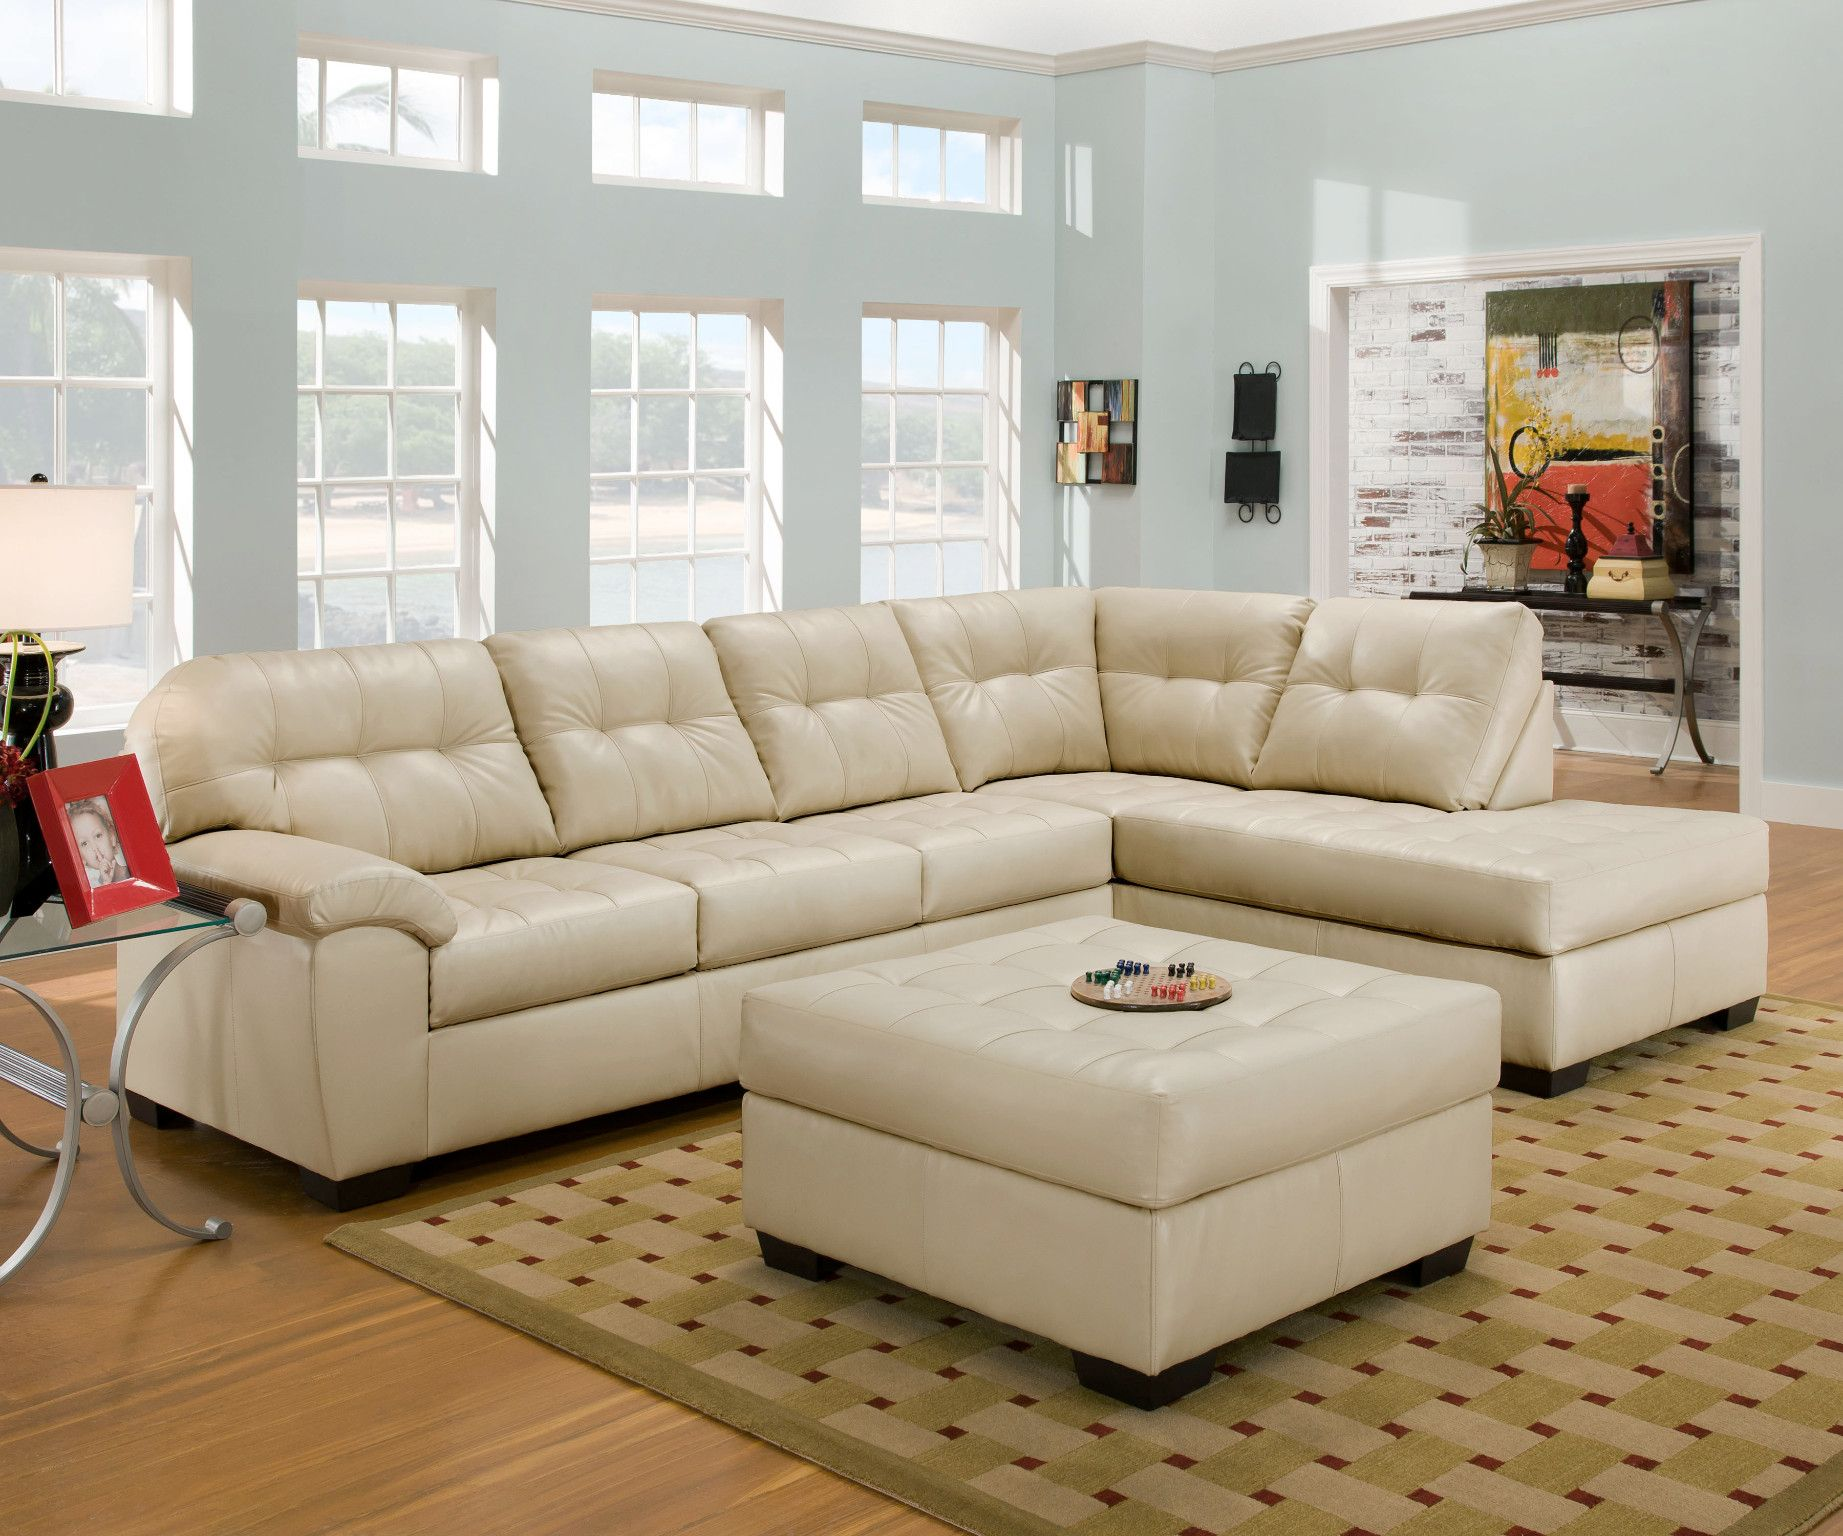 2 Piece Sectional Sofa In Soho Pearl Natural Cream Bonded Leather 899 00 Sofa 9 Sectional Sofa Couch Sectional Sofa With Chaise Leather Sectional Sofas